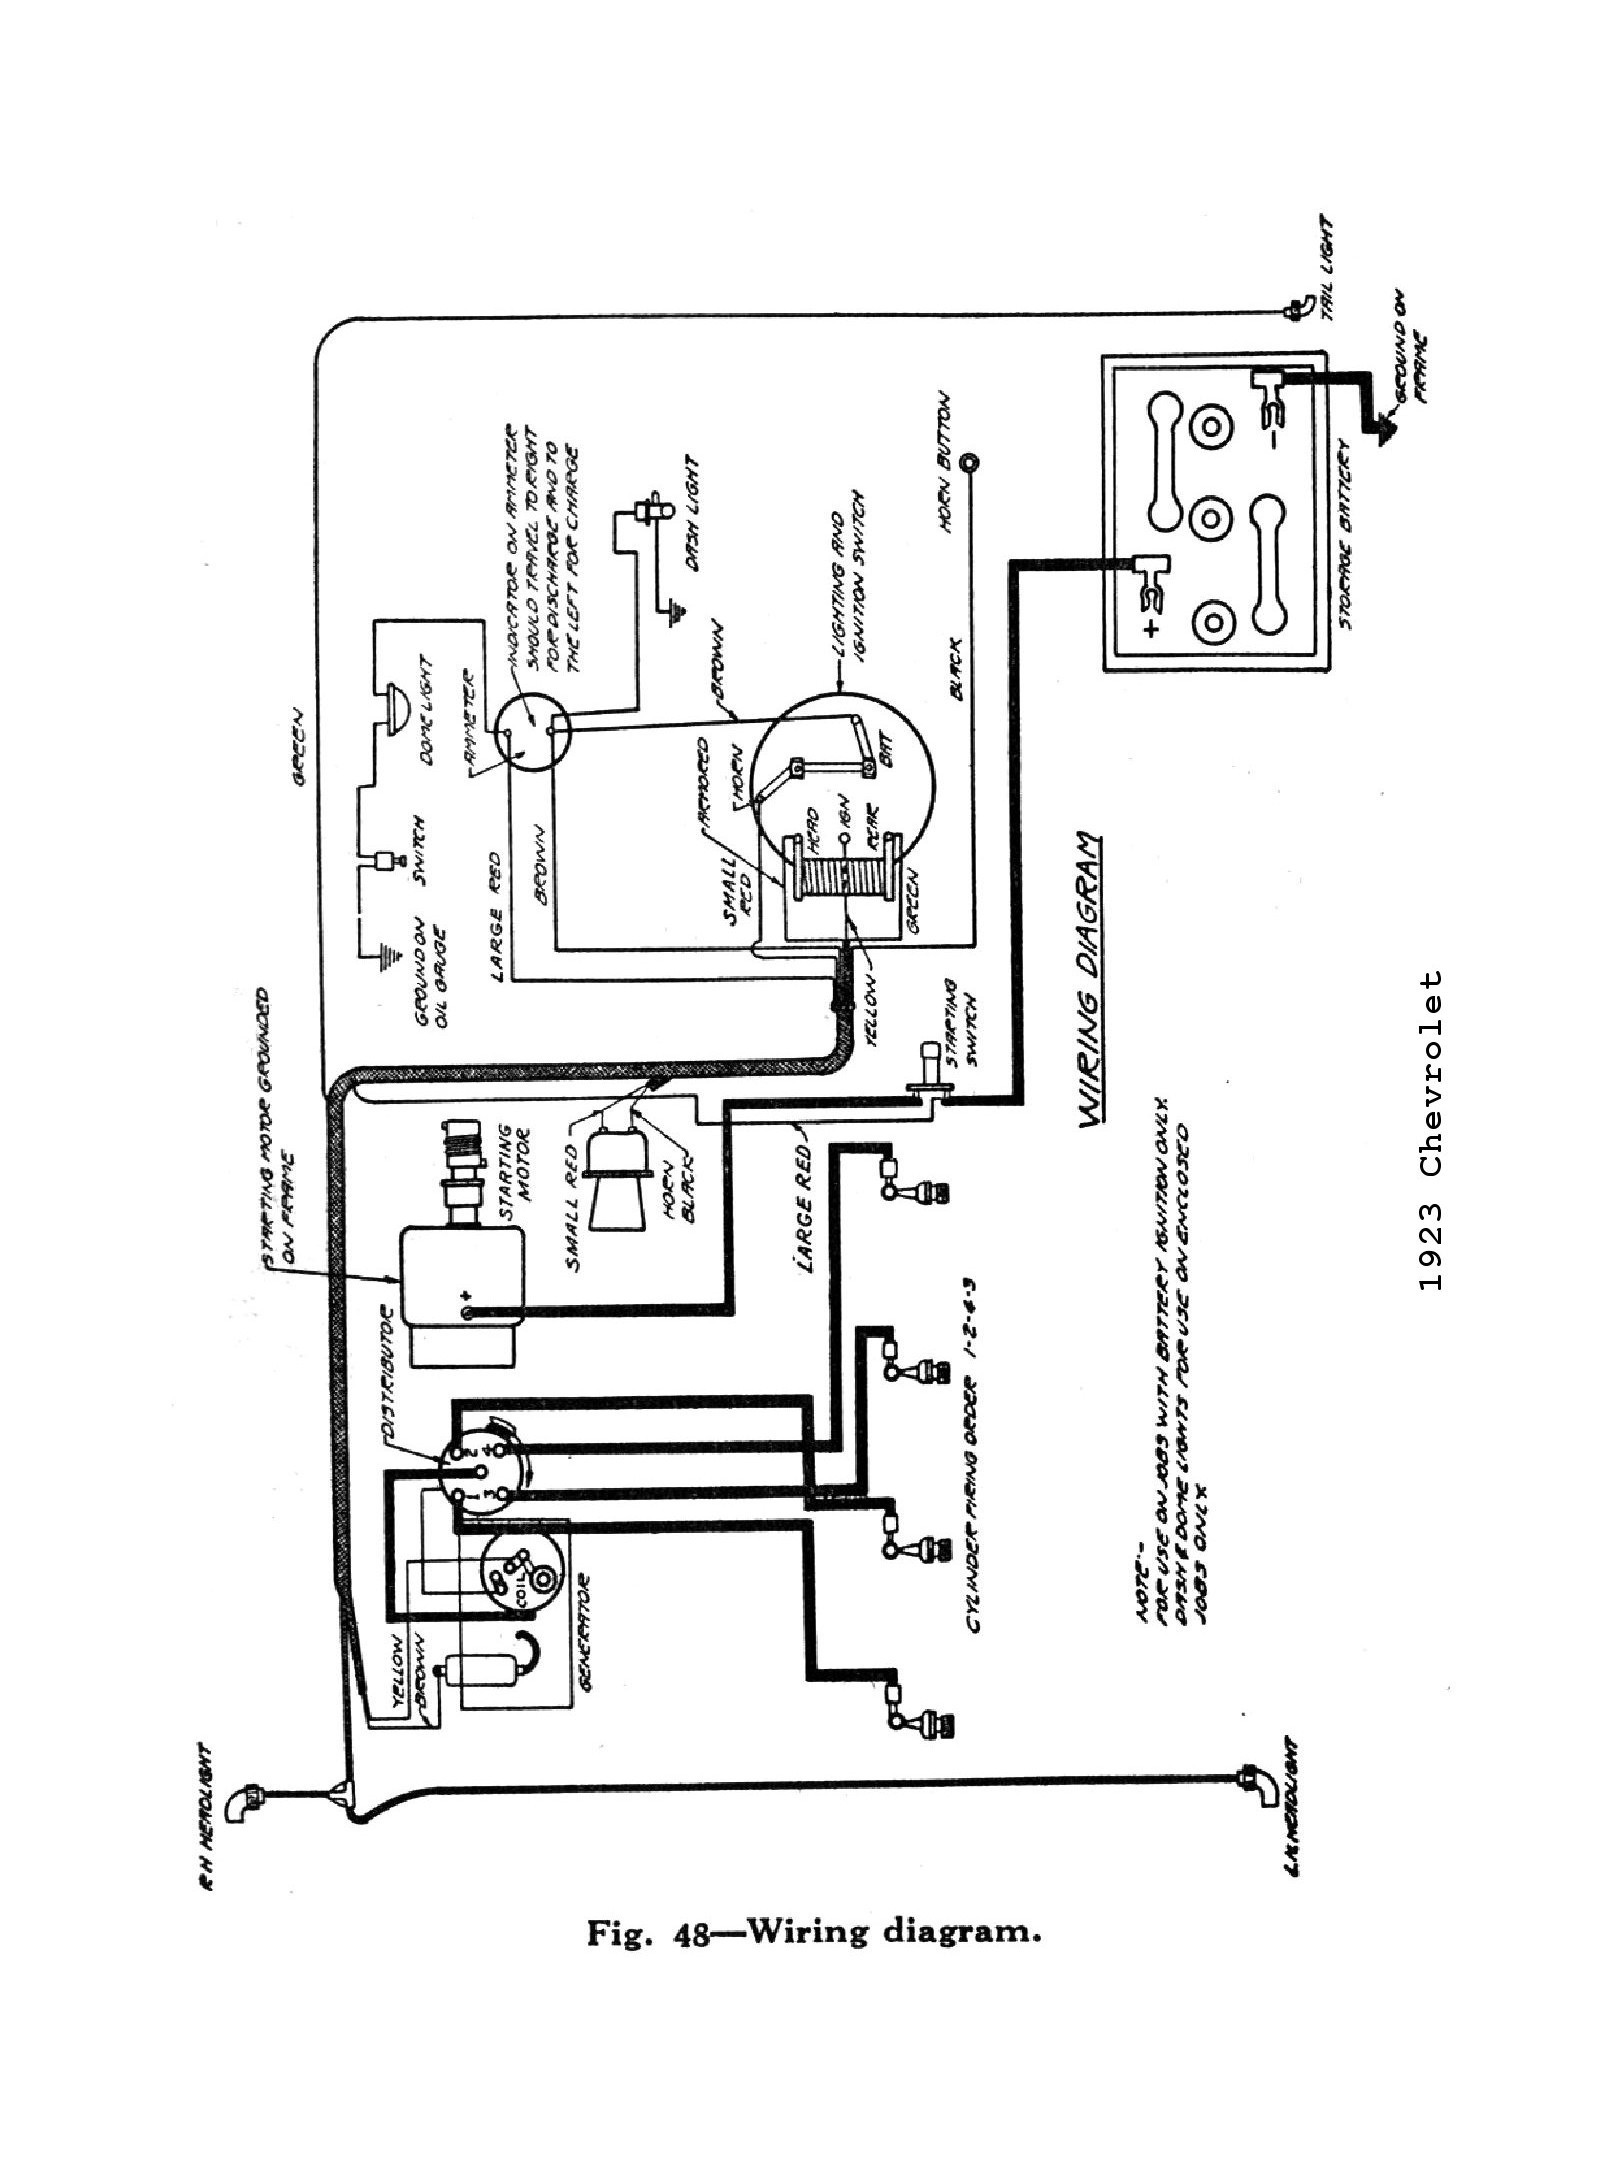 Semi Truck Engine Diagram 79 F150 Solenoid Wiring Ford Chevrolet Related Post